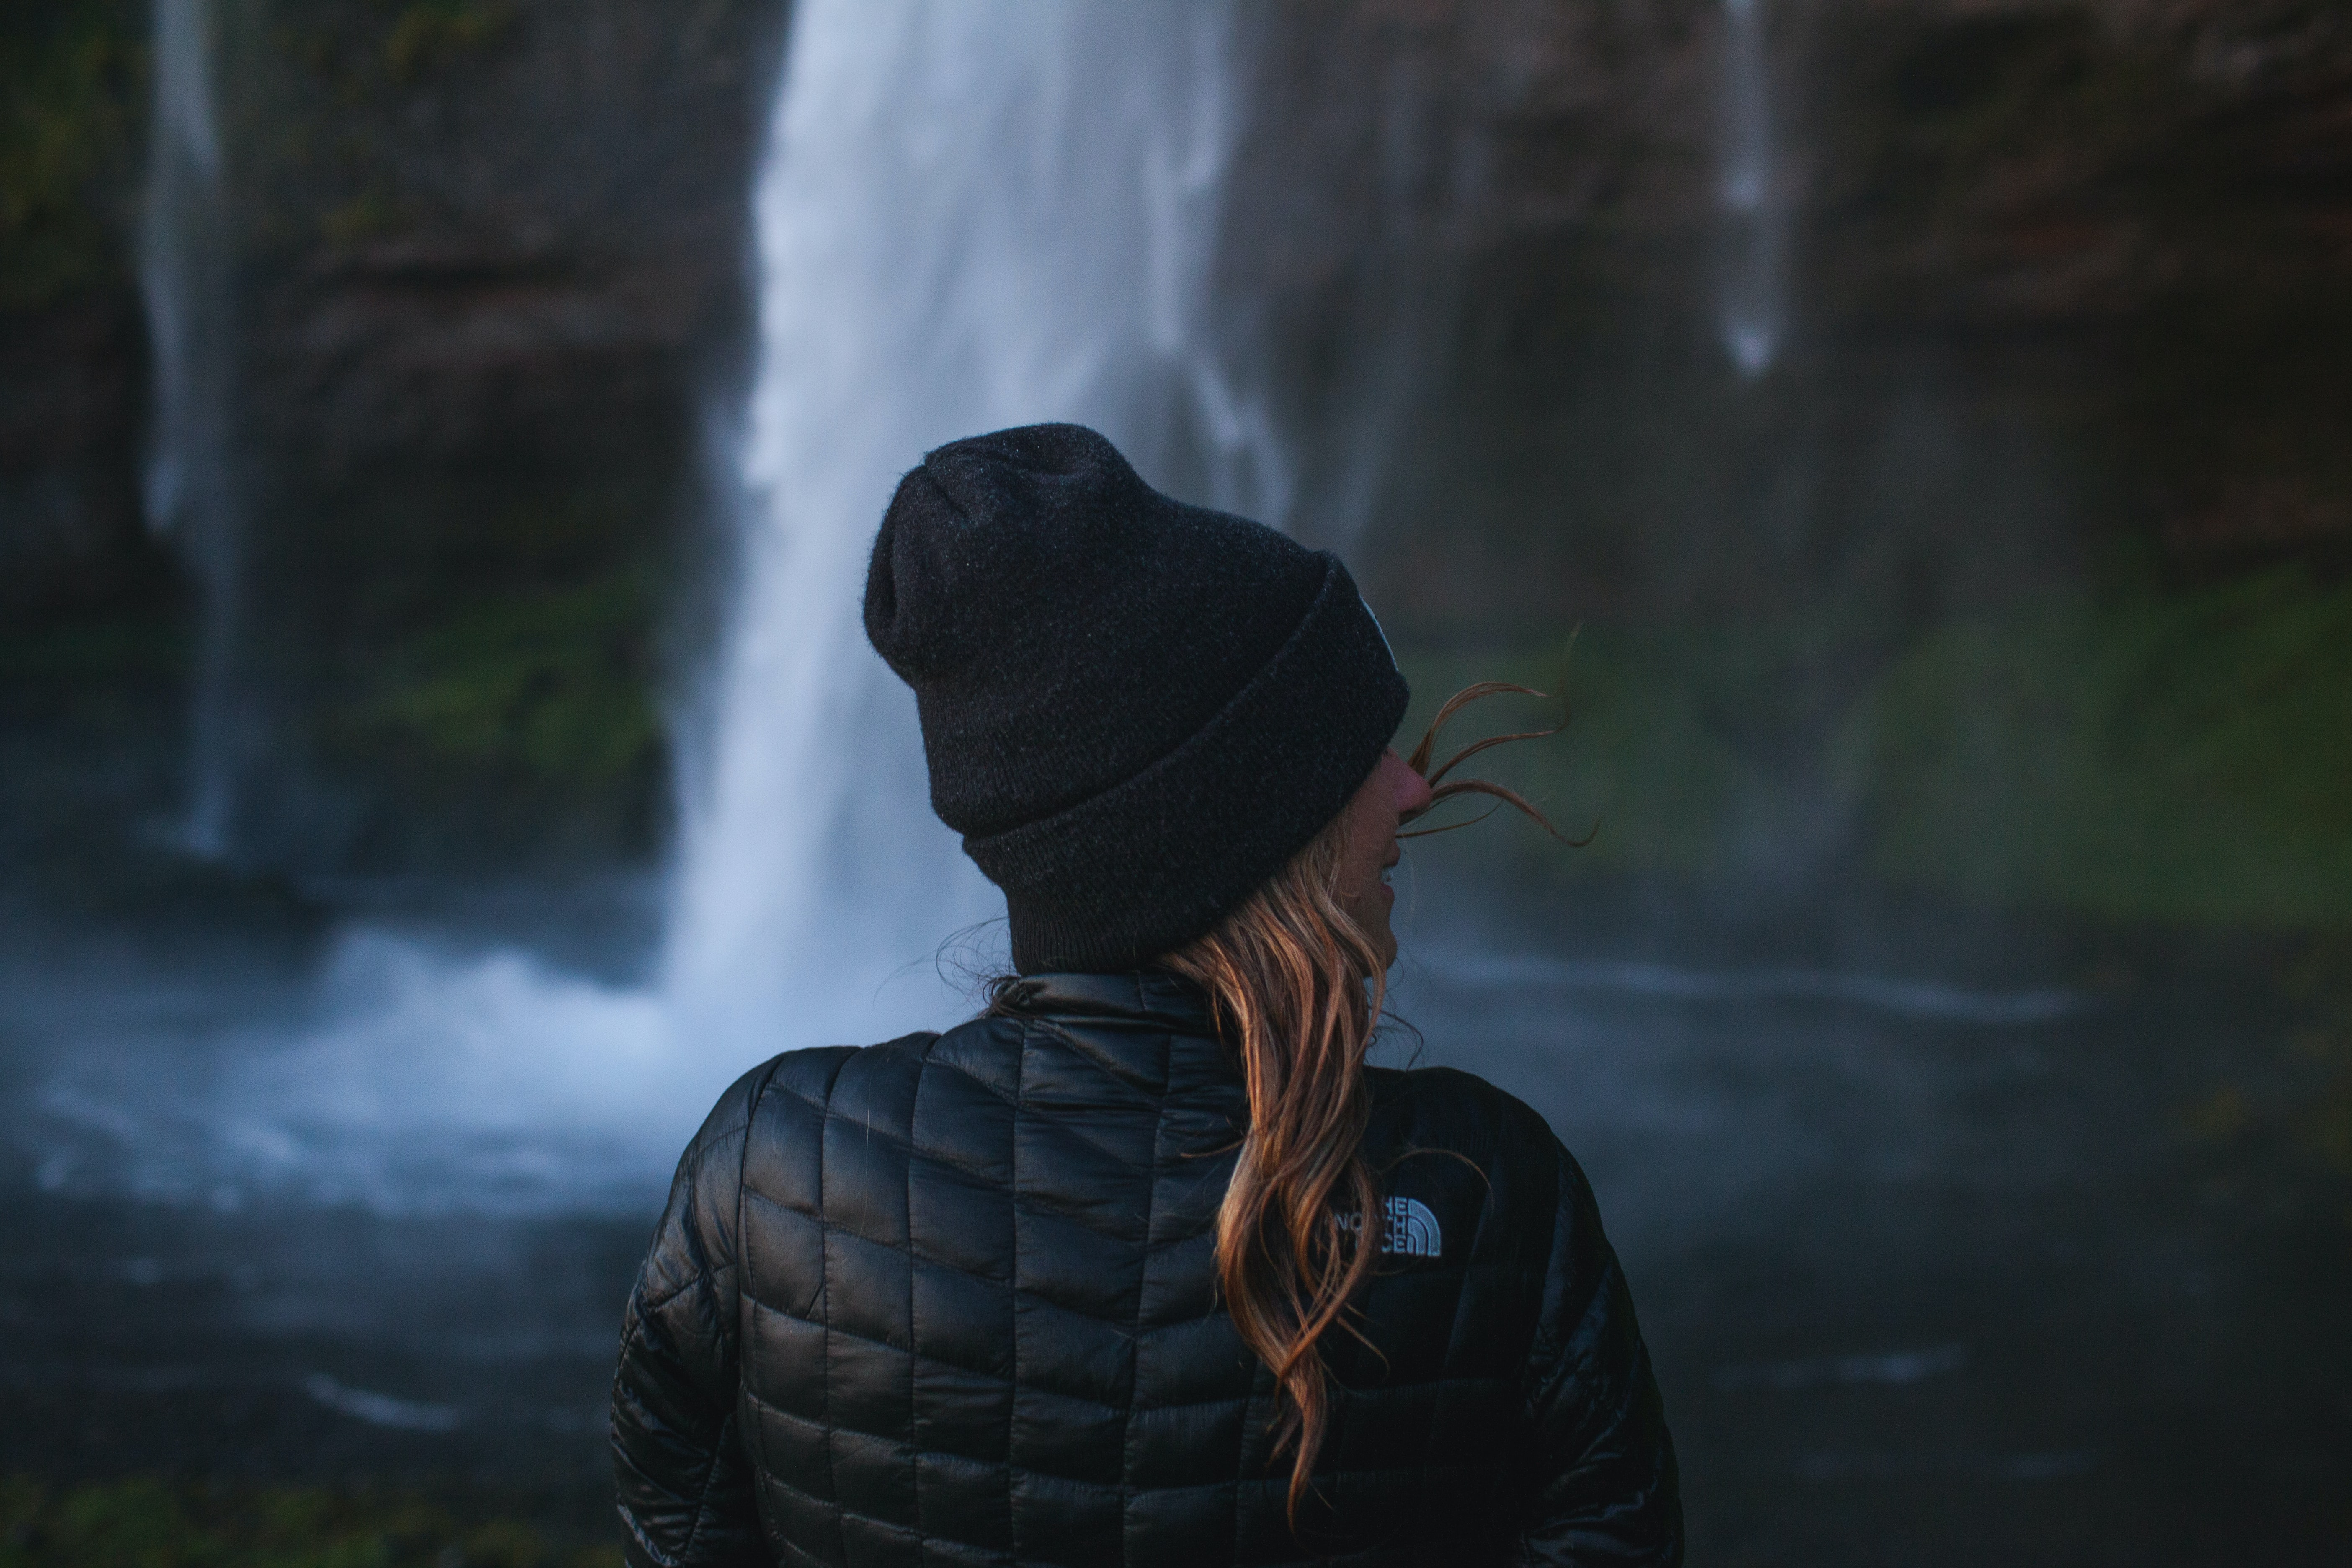 photo of woman wearing black jacket near waterfall